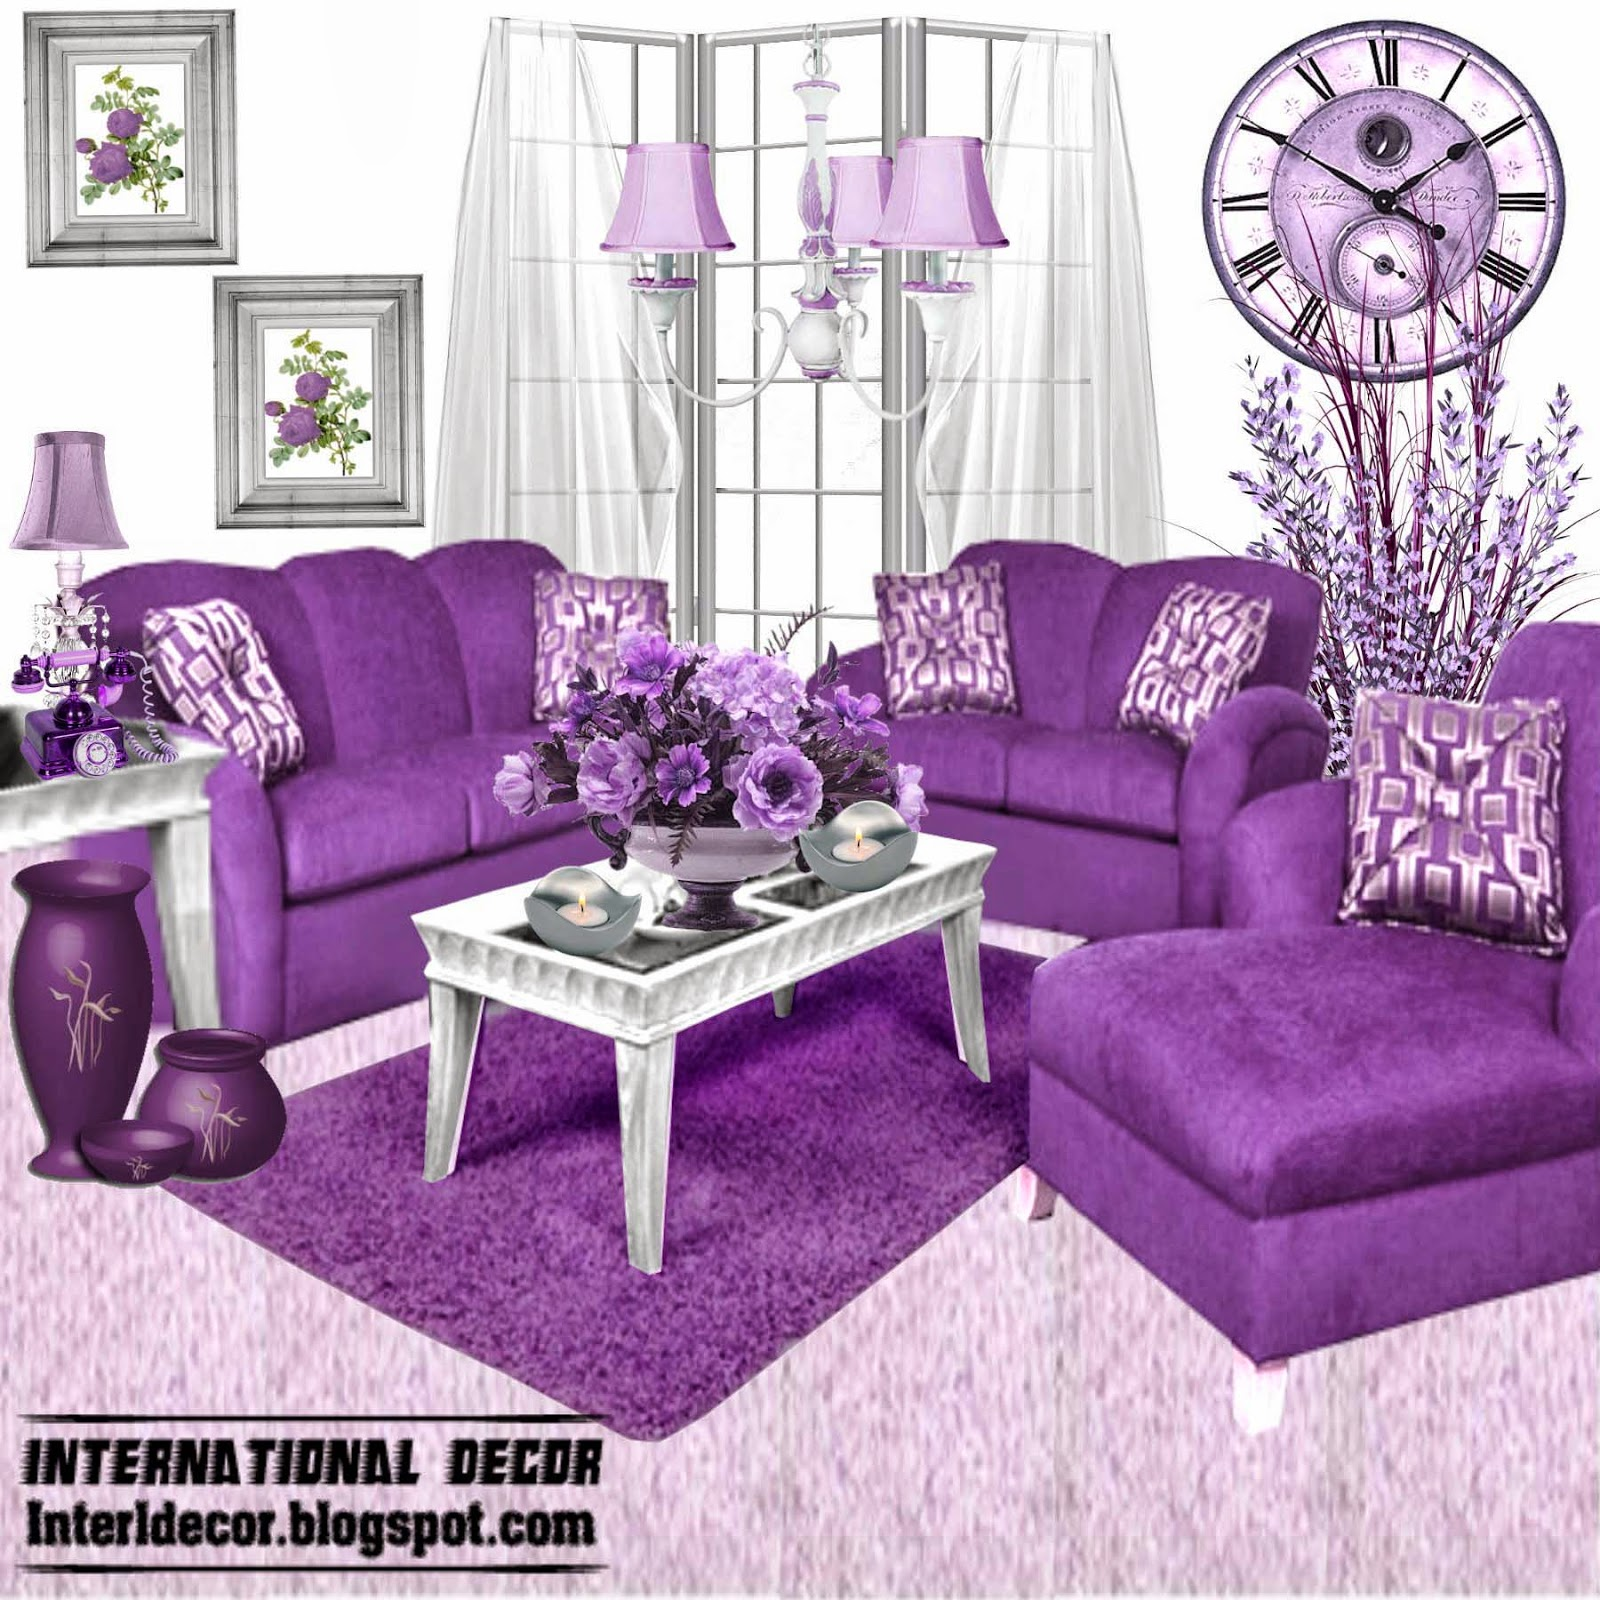 Luxury purple furniture sets sofas chairs for living Purple living room decor